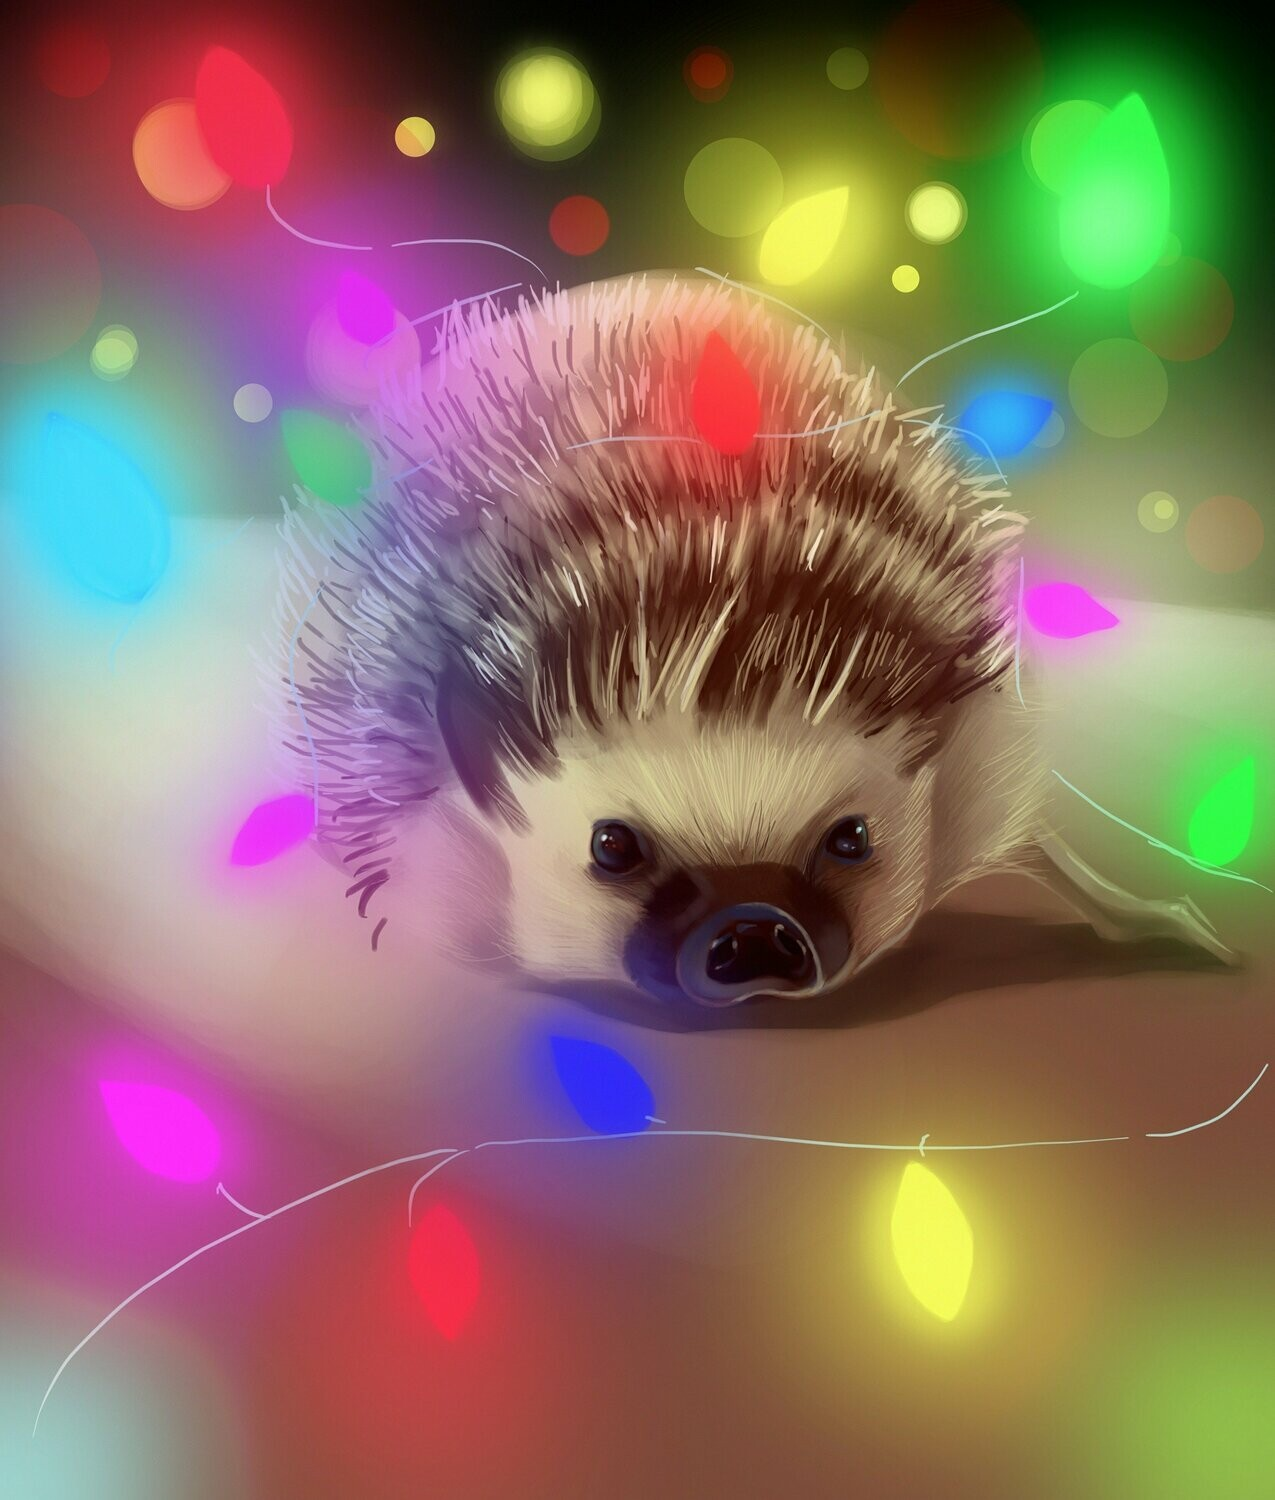 Hedgehog Fairy Lights - Full Drill Diamond Painting - Specially ordered for you. Delivery is approximately 4 - 6 weeks.